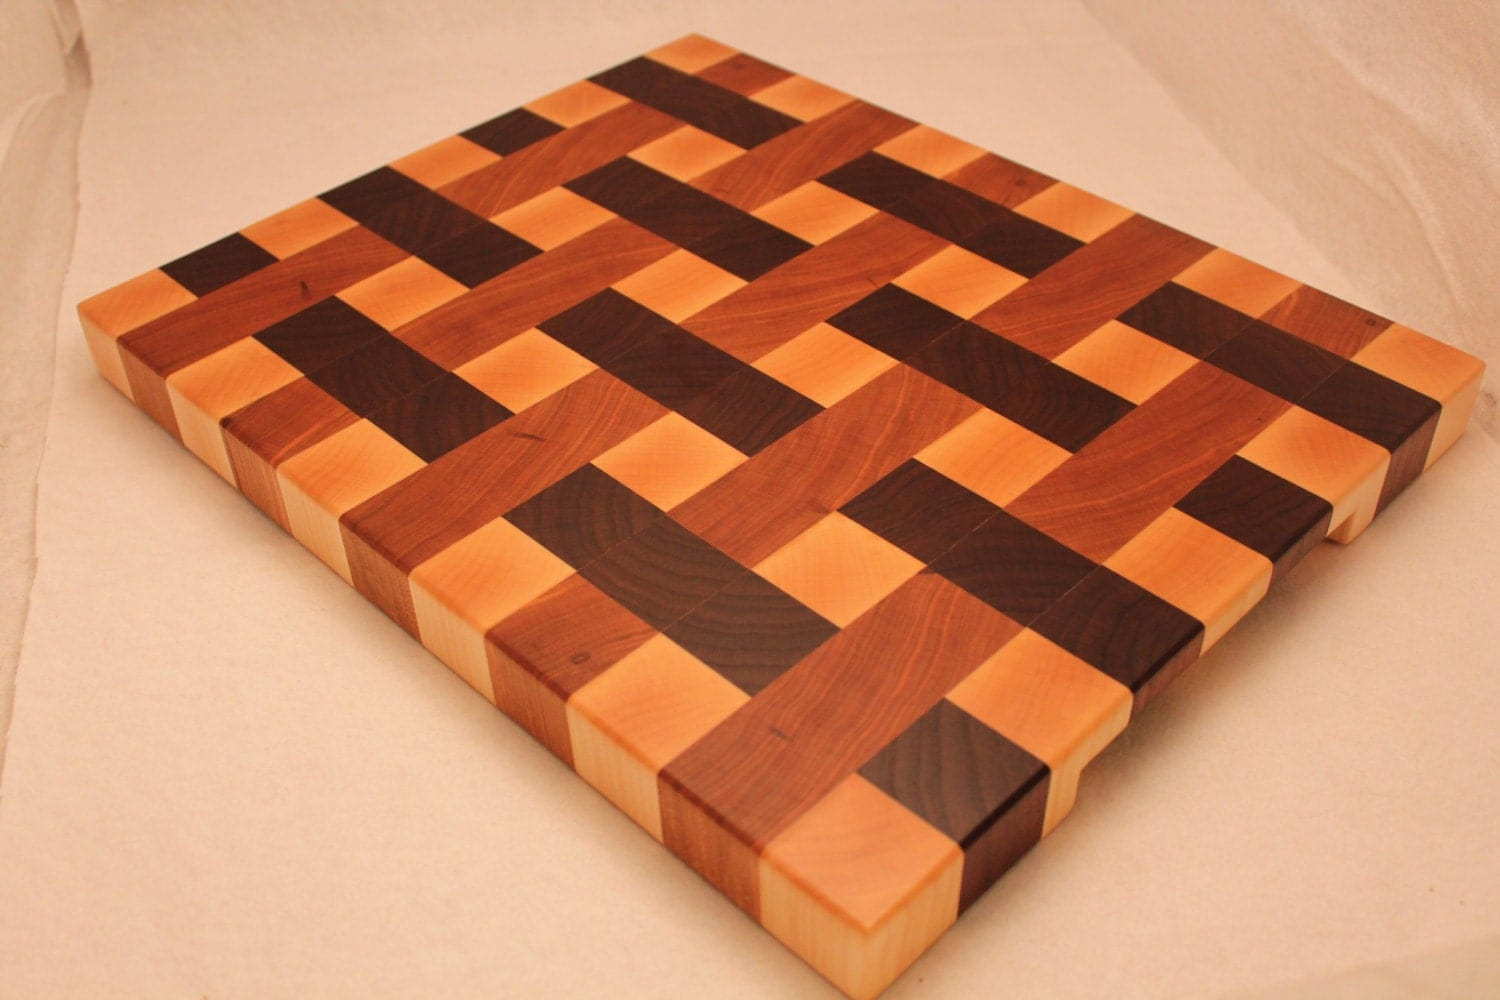 Wood end grain weave pattern butcher block cutting board for Puzzle cutting board plans